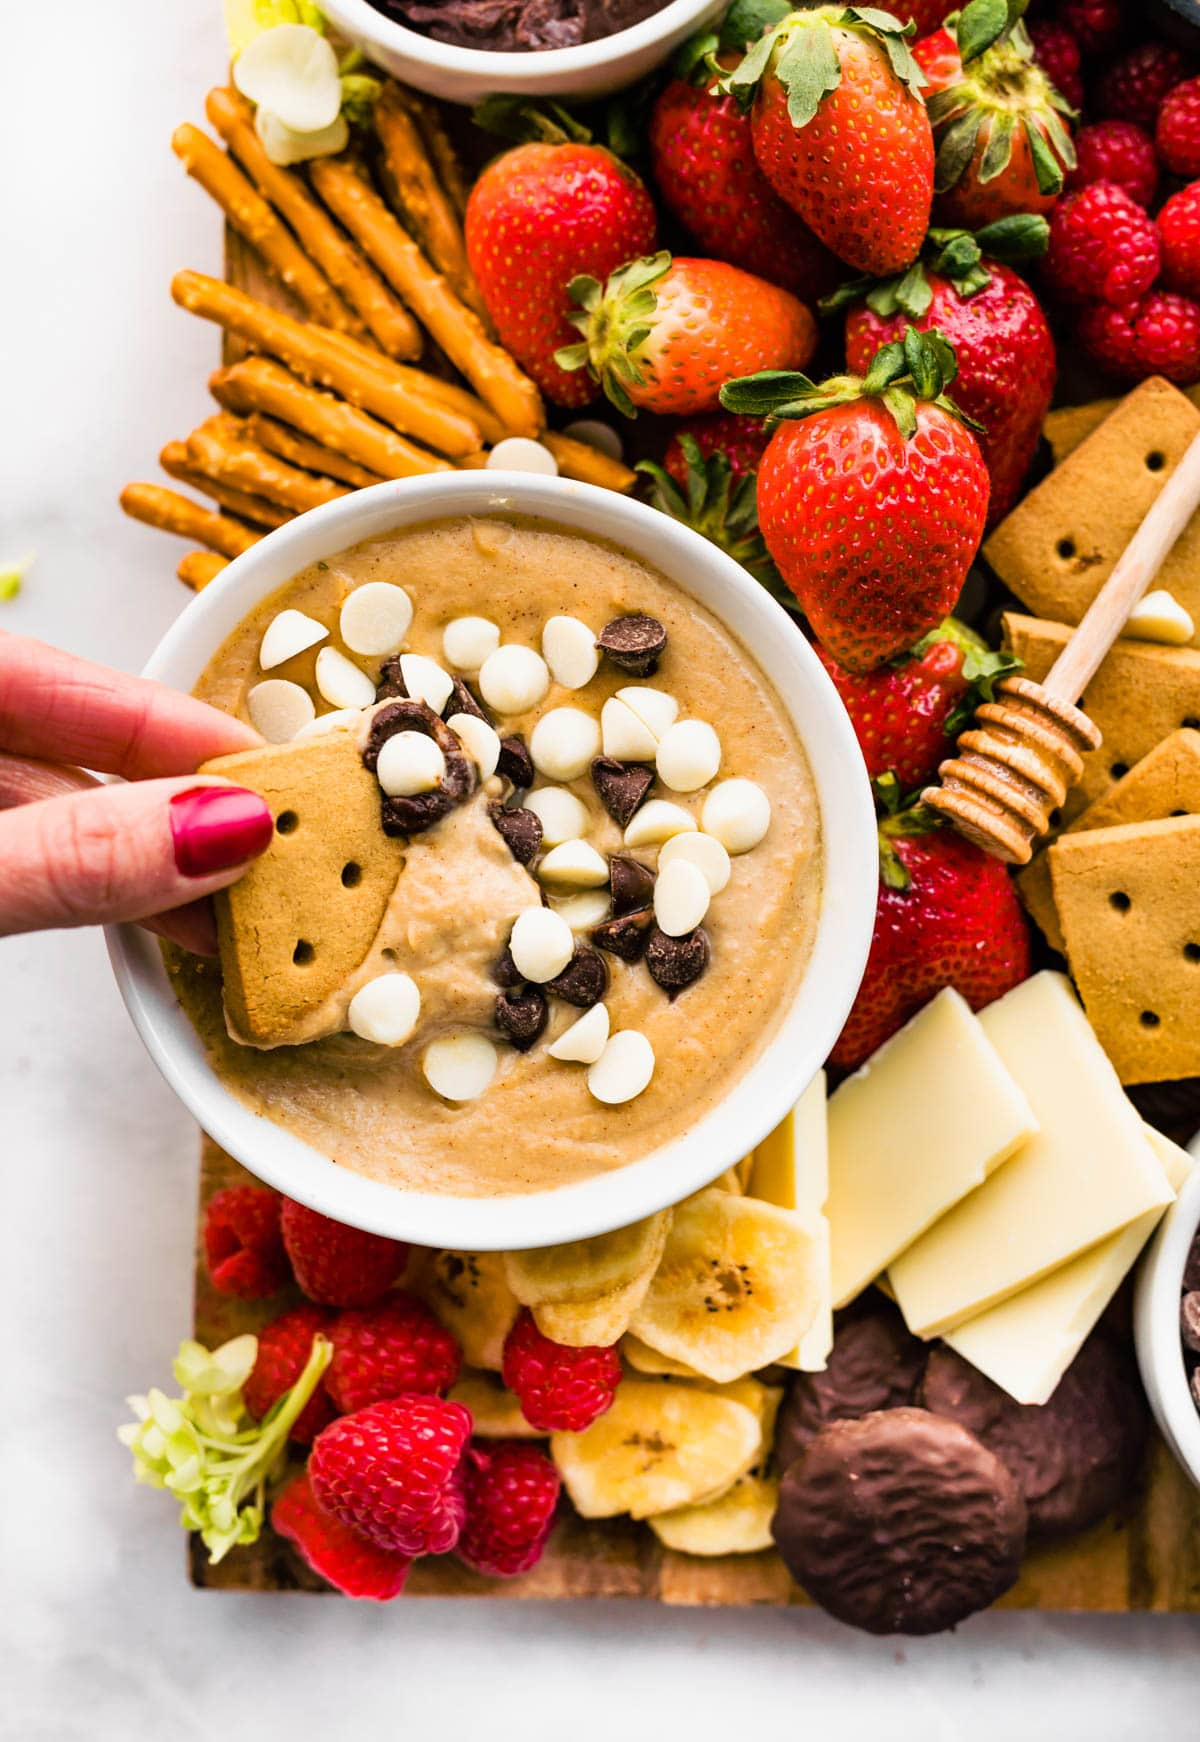 chickpea cookie dough dessert hummus on sugar free dessert platter